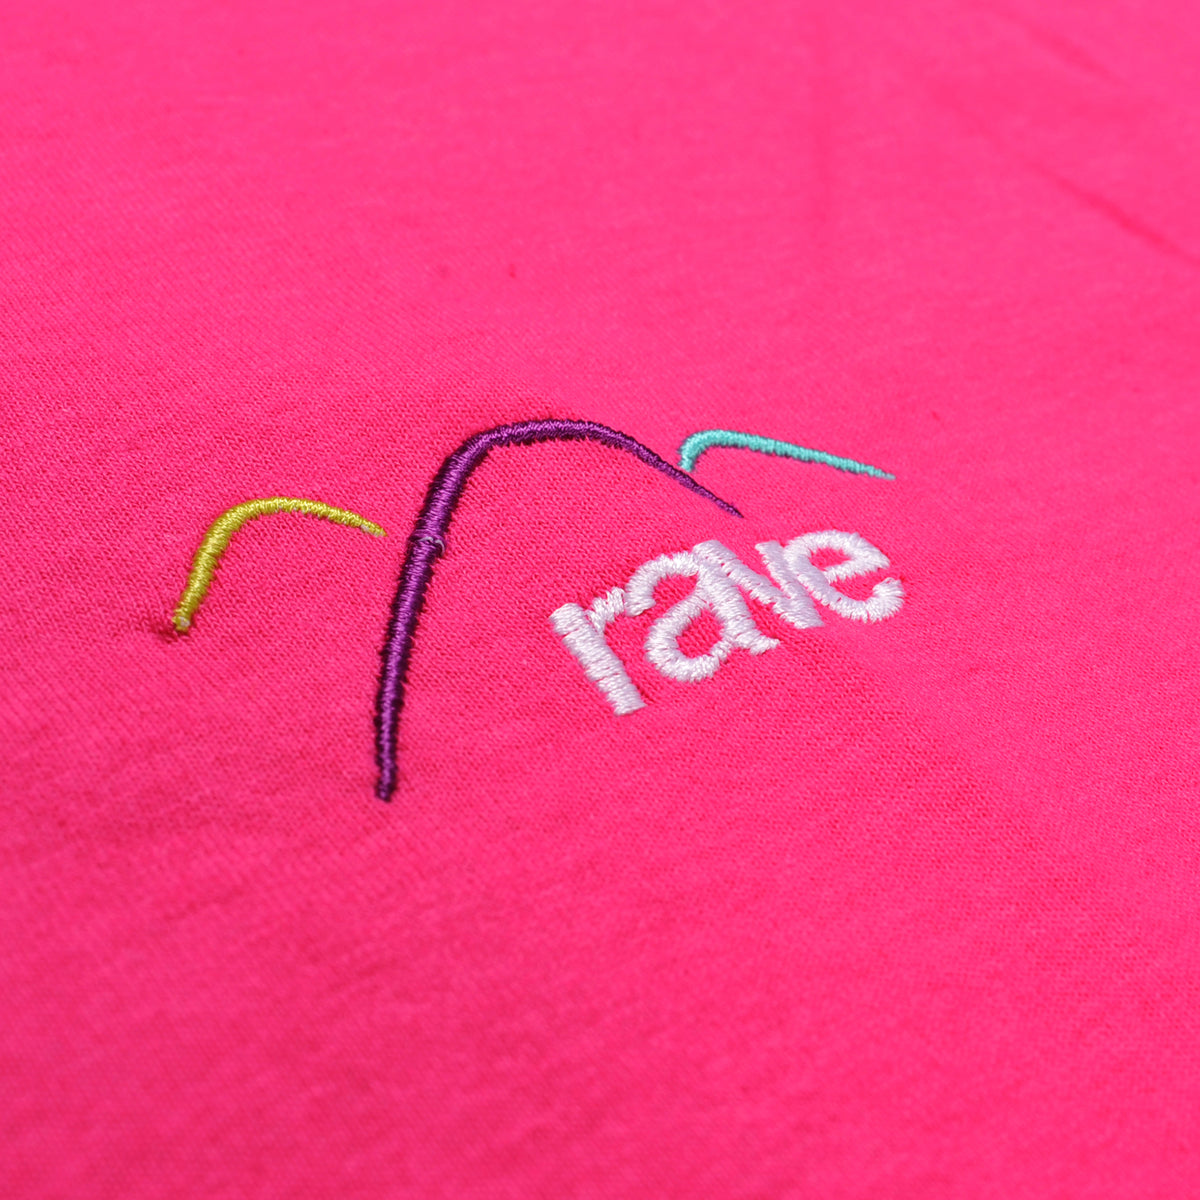 SUMMIT pink tee - RAVE skateboards